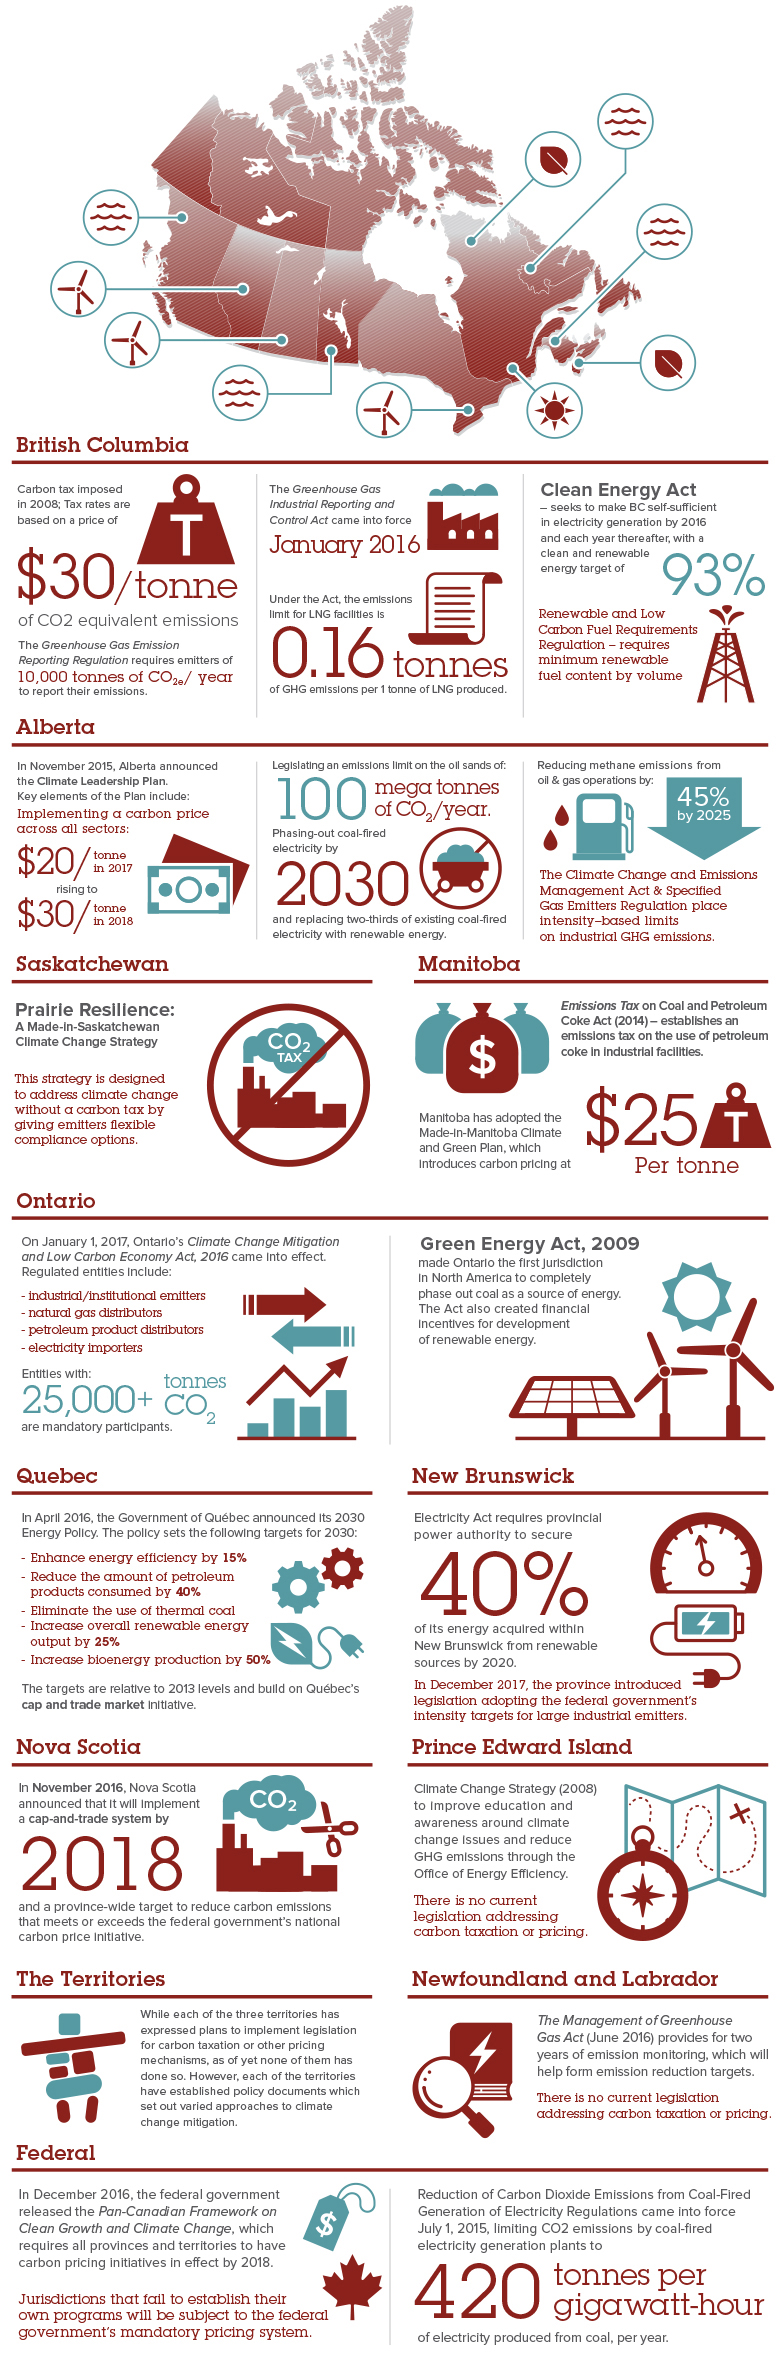 Carbon & Greenhouse Gas Legislation Comparison across Canada